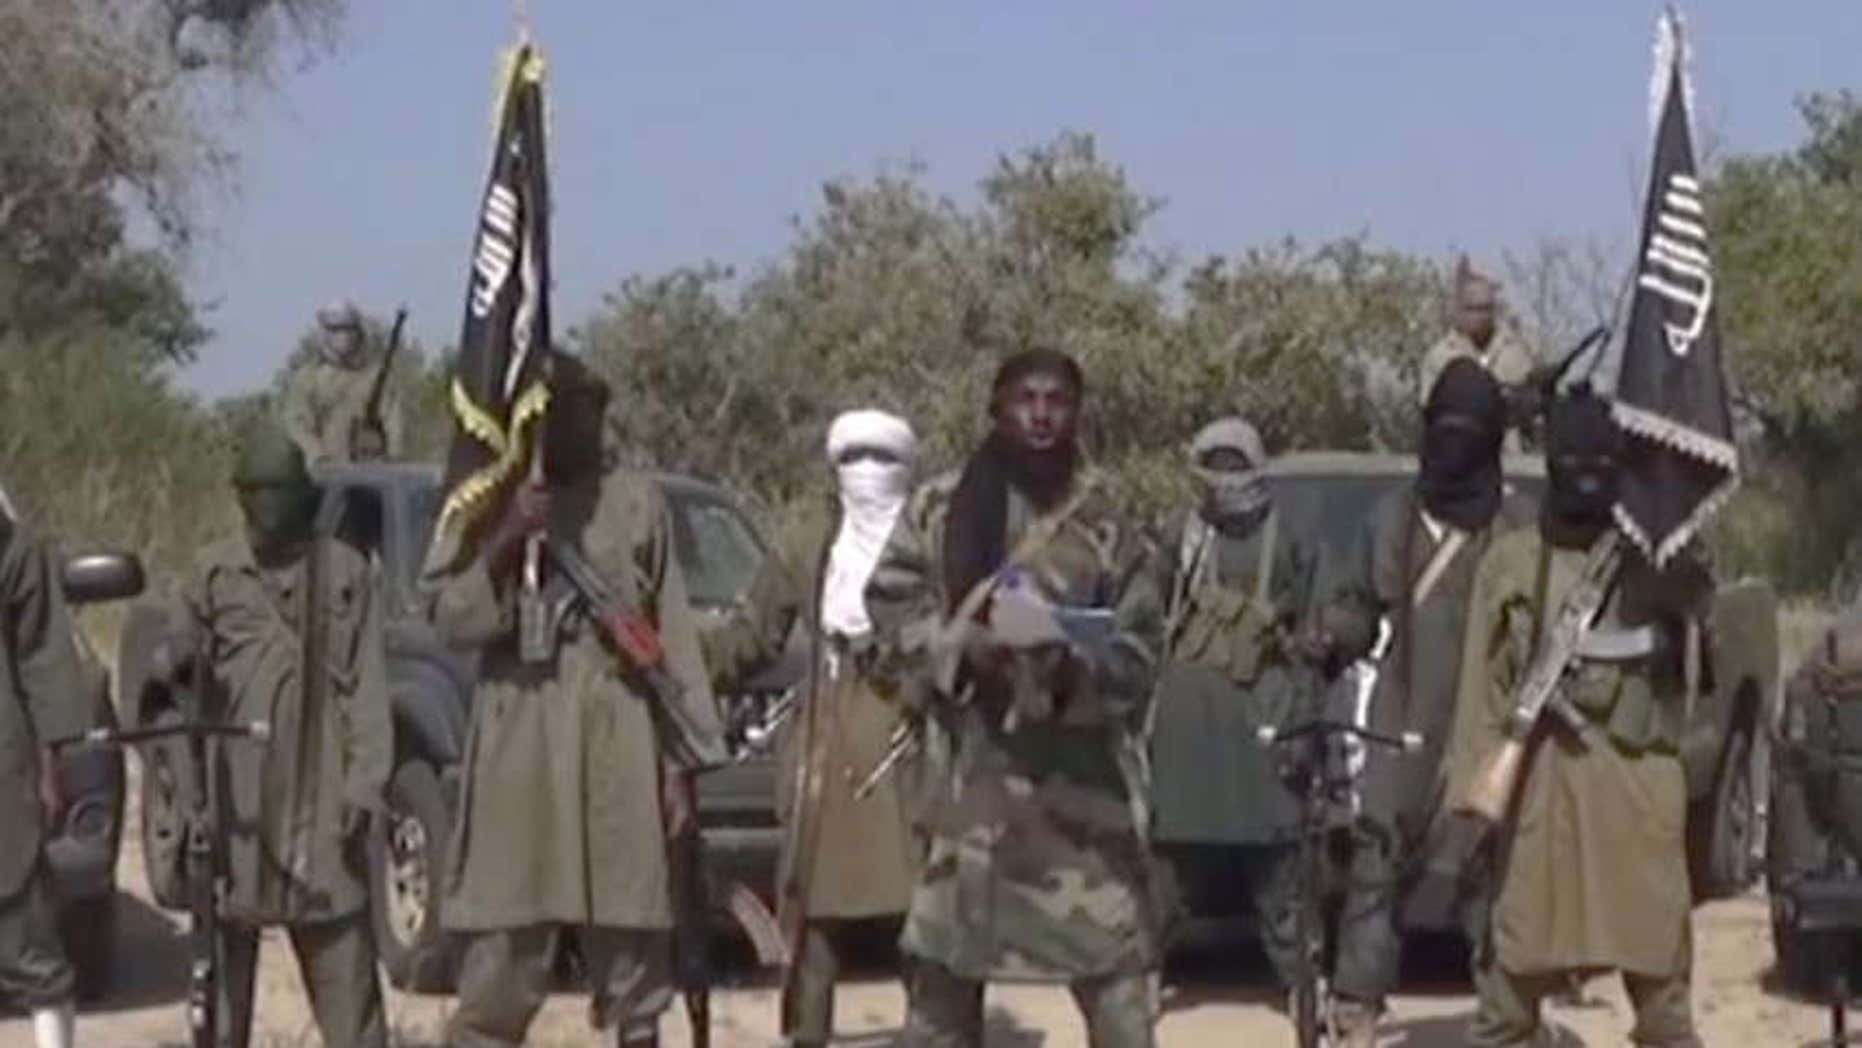 OCt. 31, 2014: Photo of members of Nigeria's Islamic extremist group Boko Haram, Islamic extremists from Nigeria attacked a border town inside Niger, marking the 2nd foreign country attacked by the group in several days.